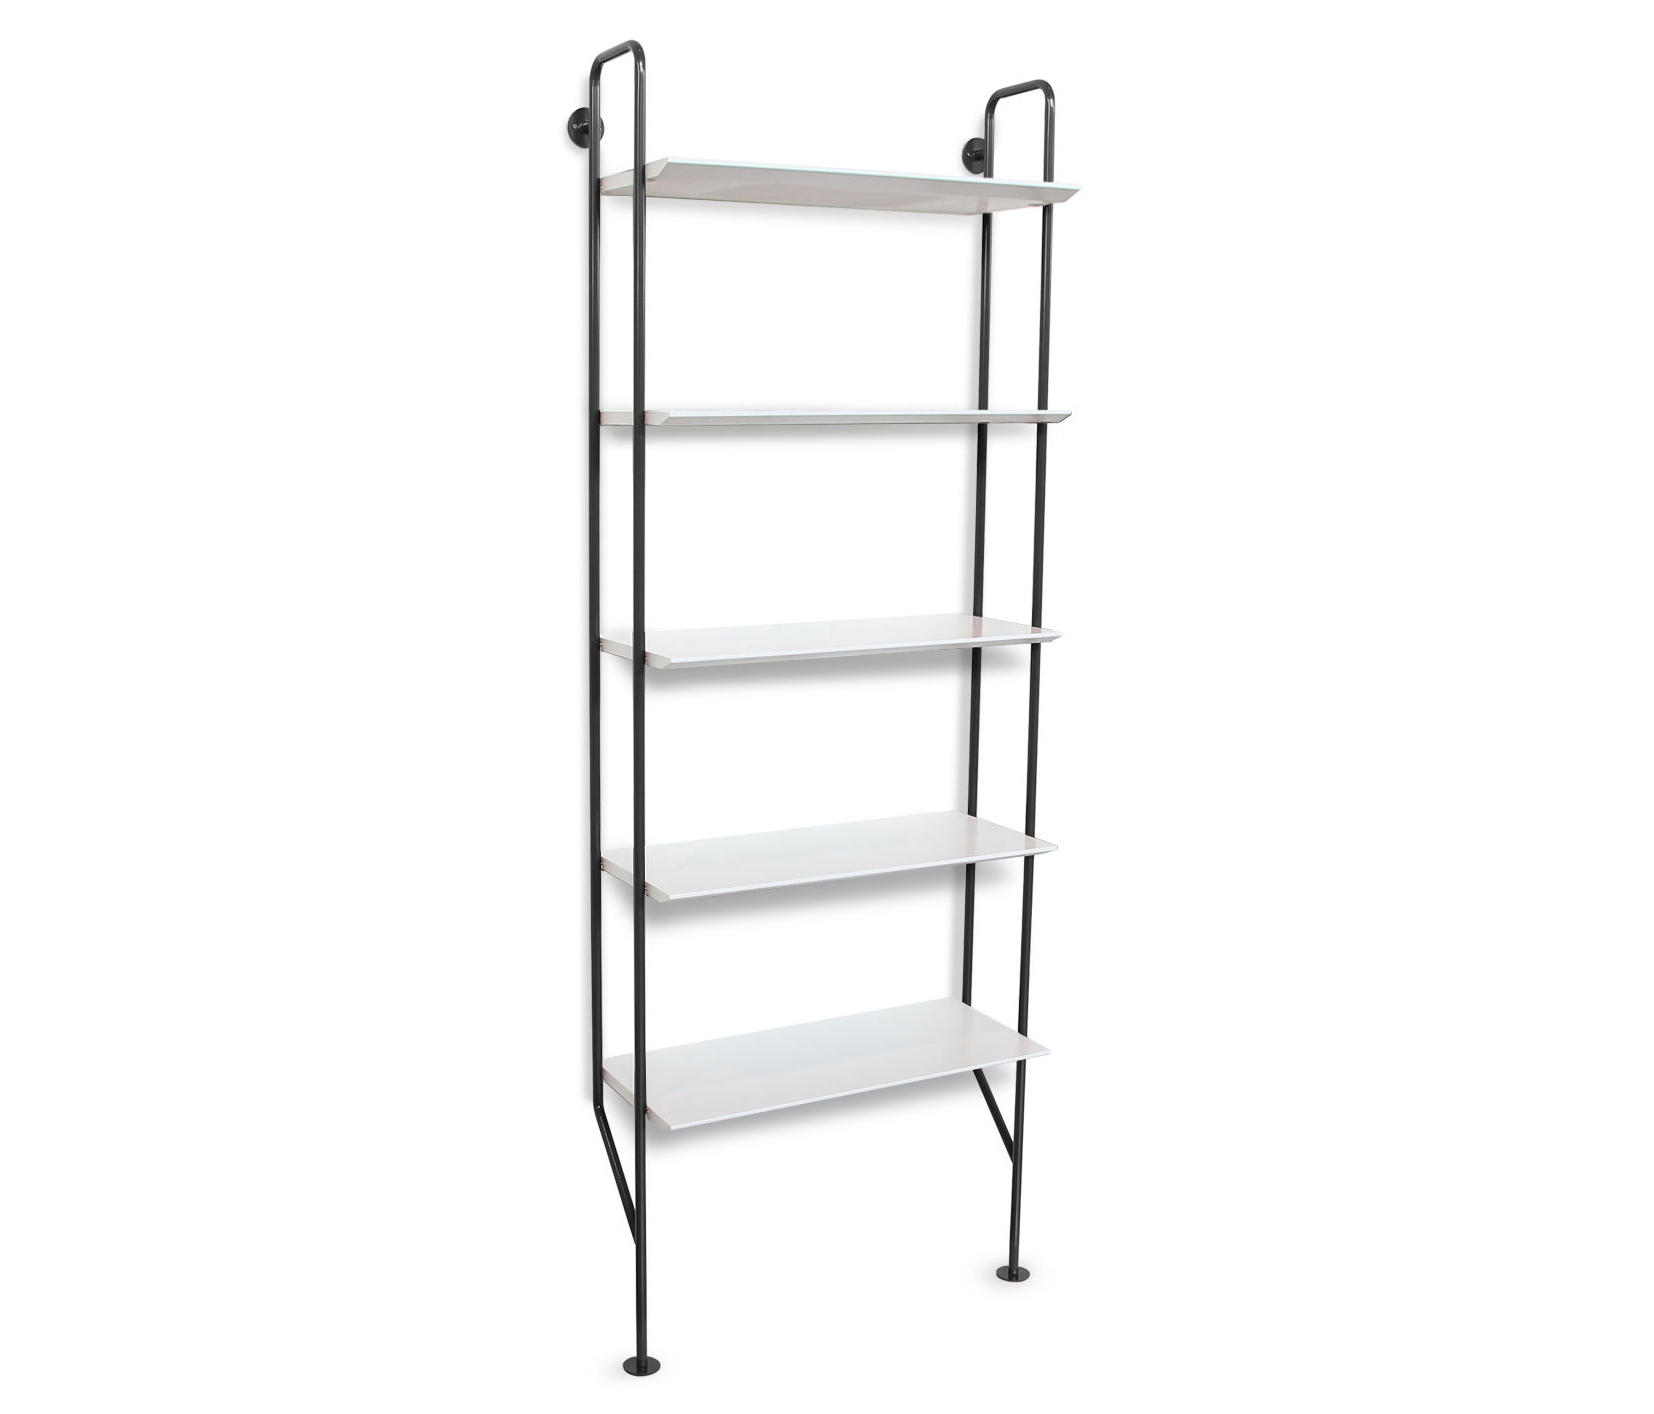 hitch add on bookcase shelving from blu dot architonic rh architonic com add doors on shelves add shelves to cabinets